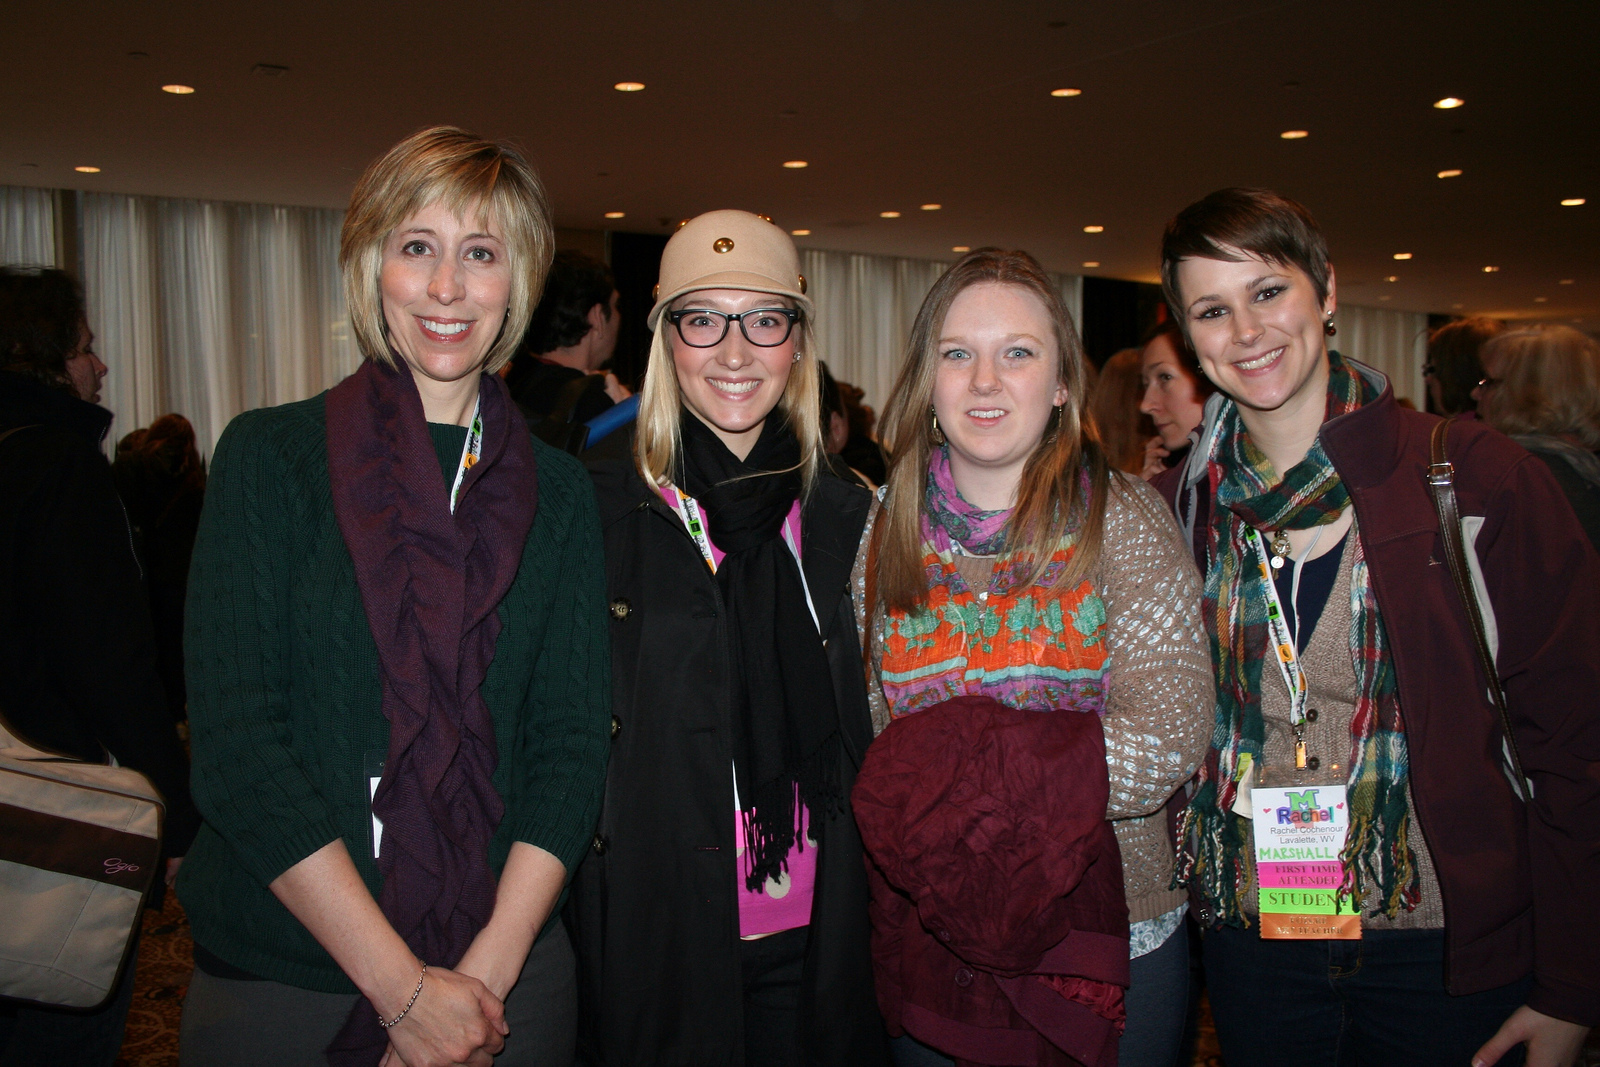 Professor Maribea Barnes with students at an Art Education conference.